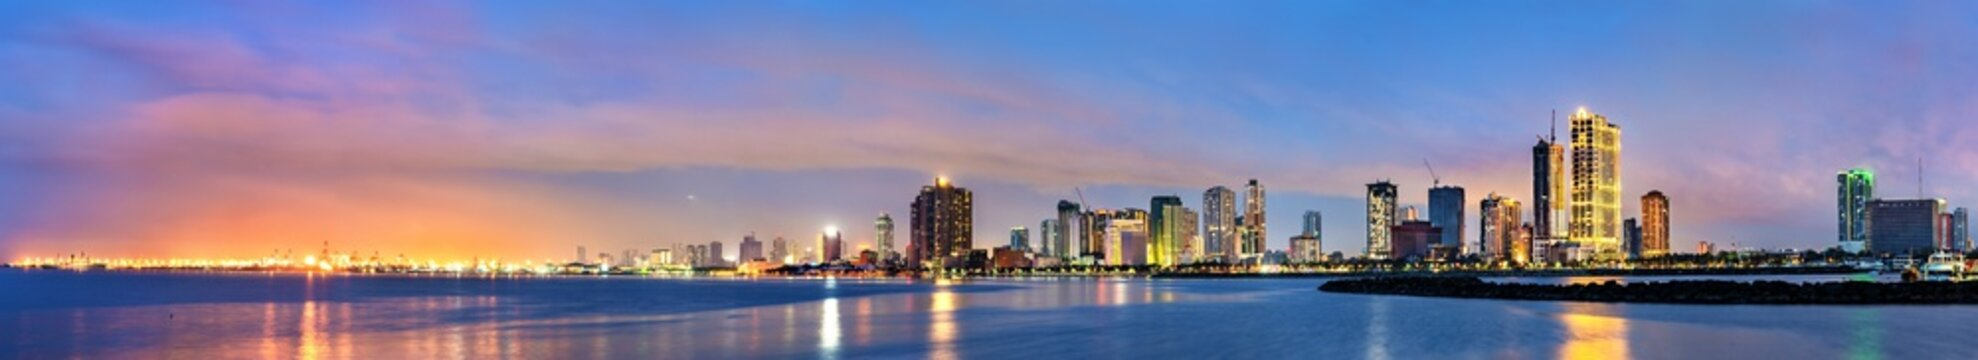 Skyline of Manila,the capital of the Philippines